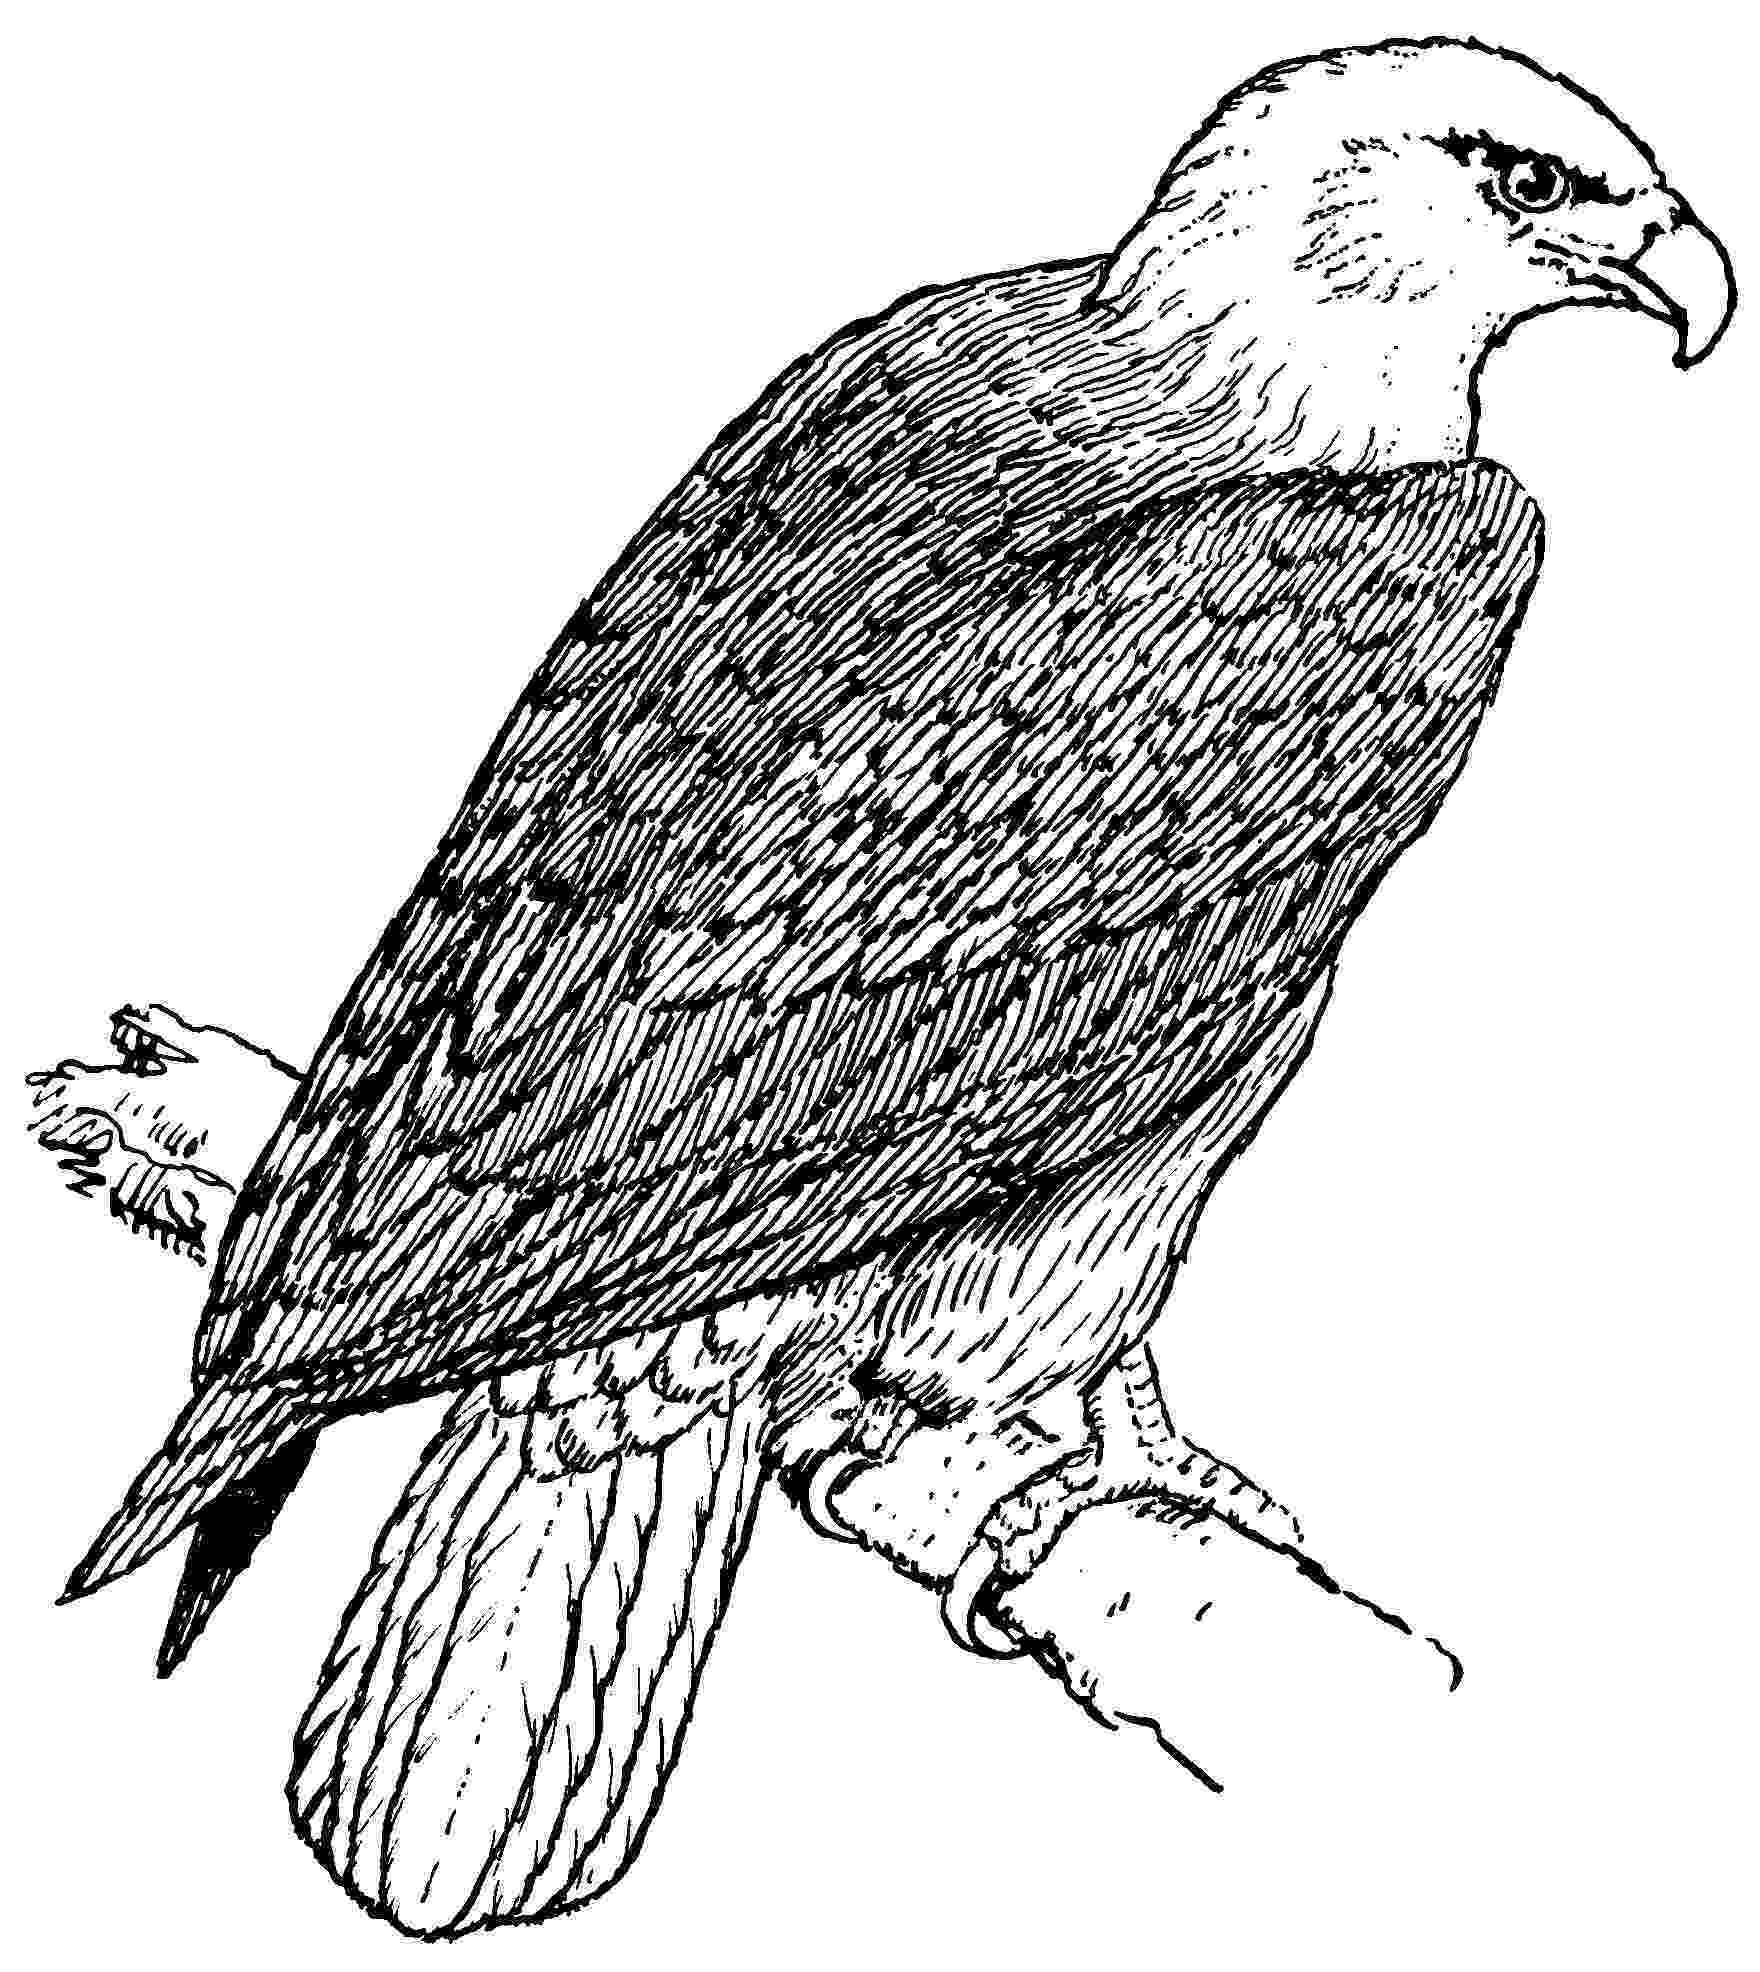 bald eagle pictures to color bald eagle with smooth feather coloring page netart color to bald eagle pictures